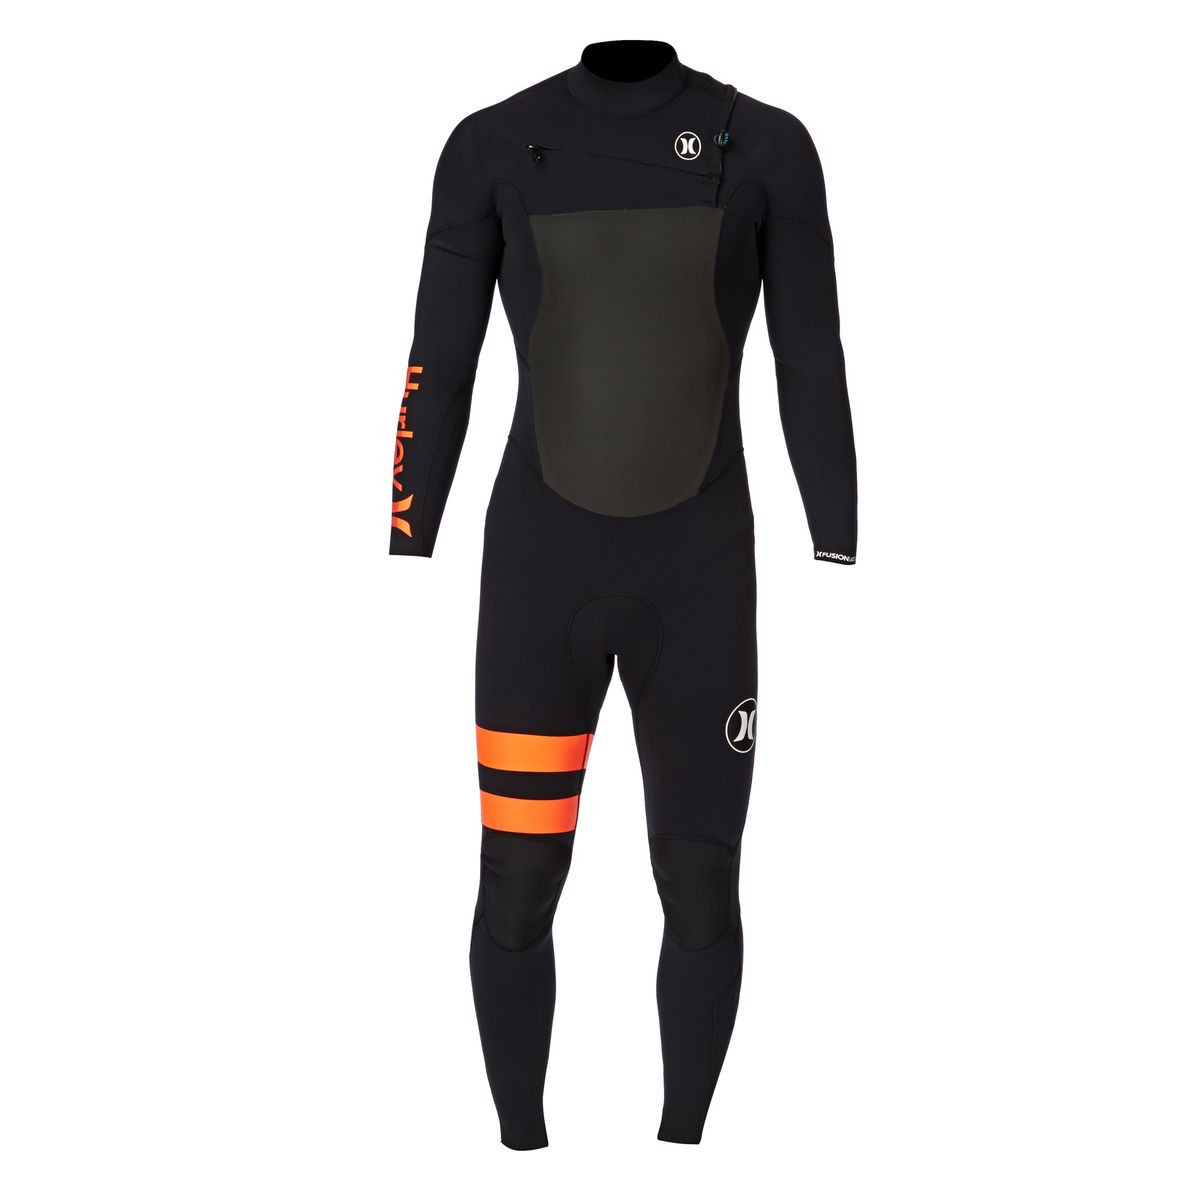 Hurley Fusion 4/3mm Chest Zip Wetsuit - Black